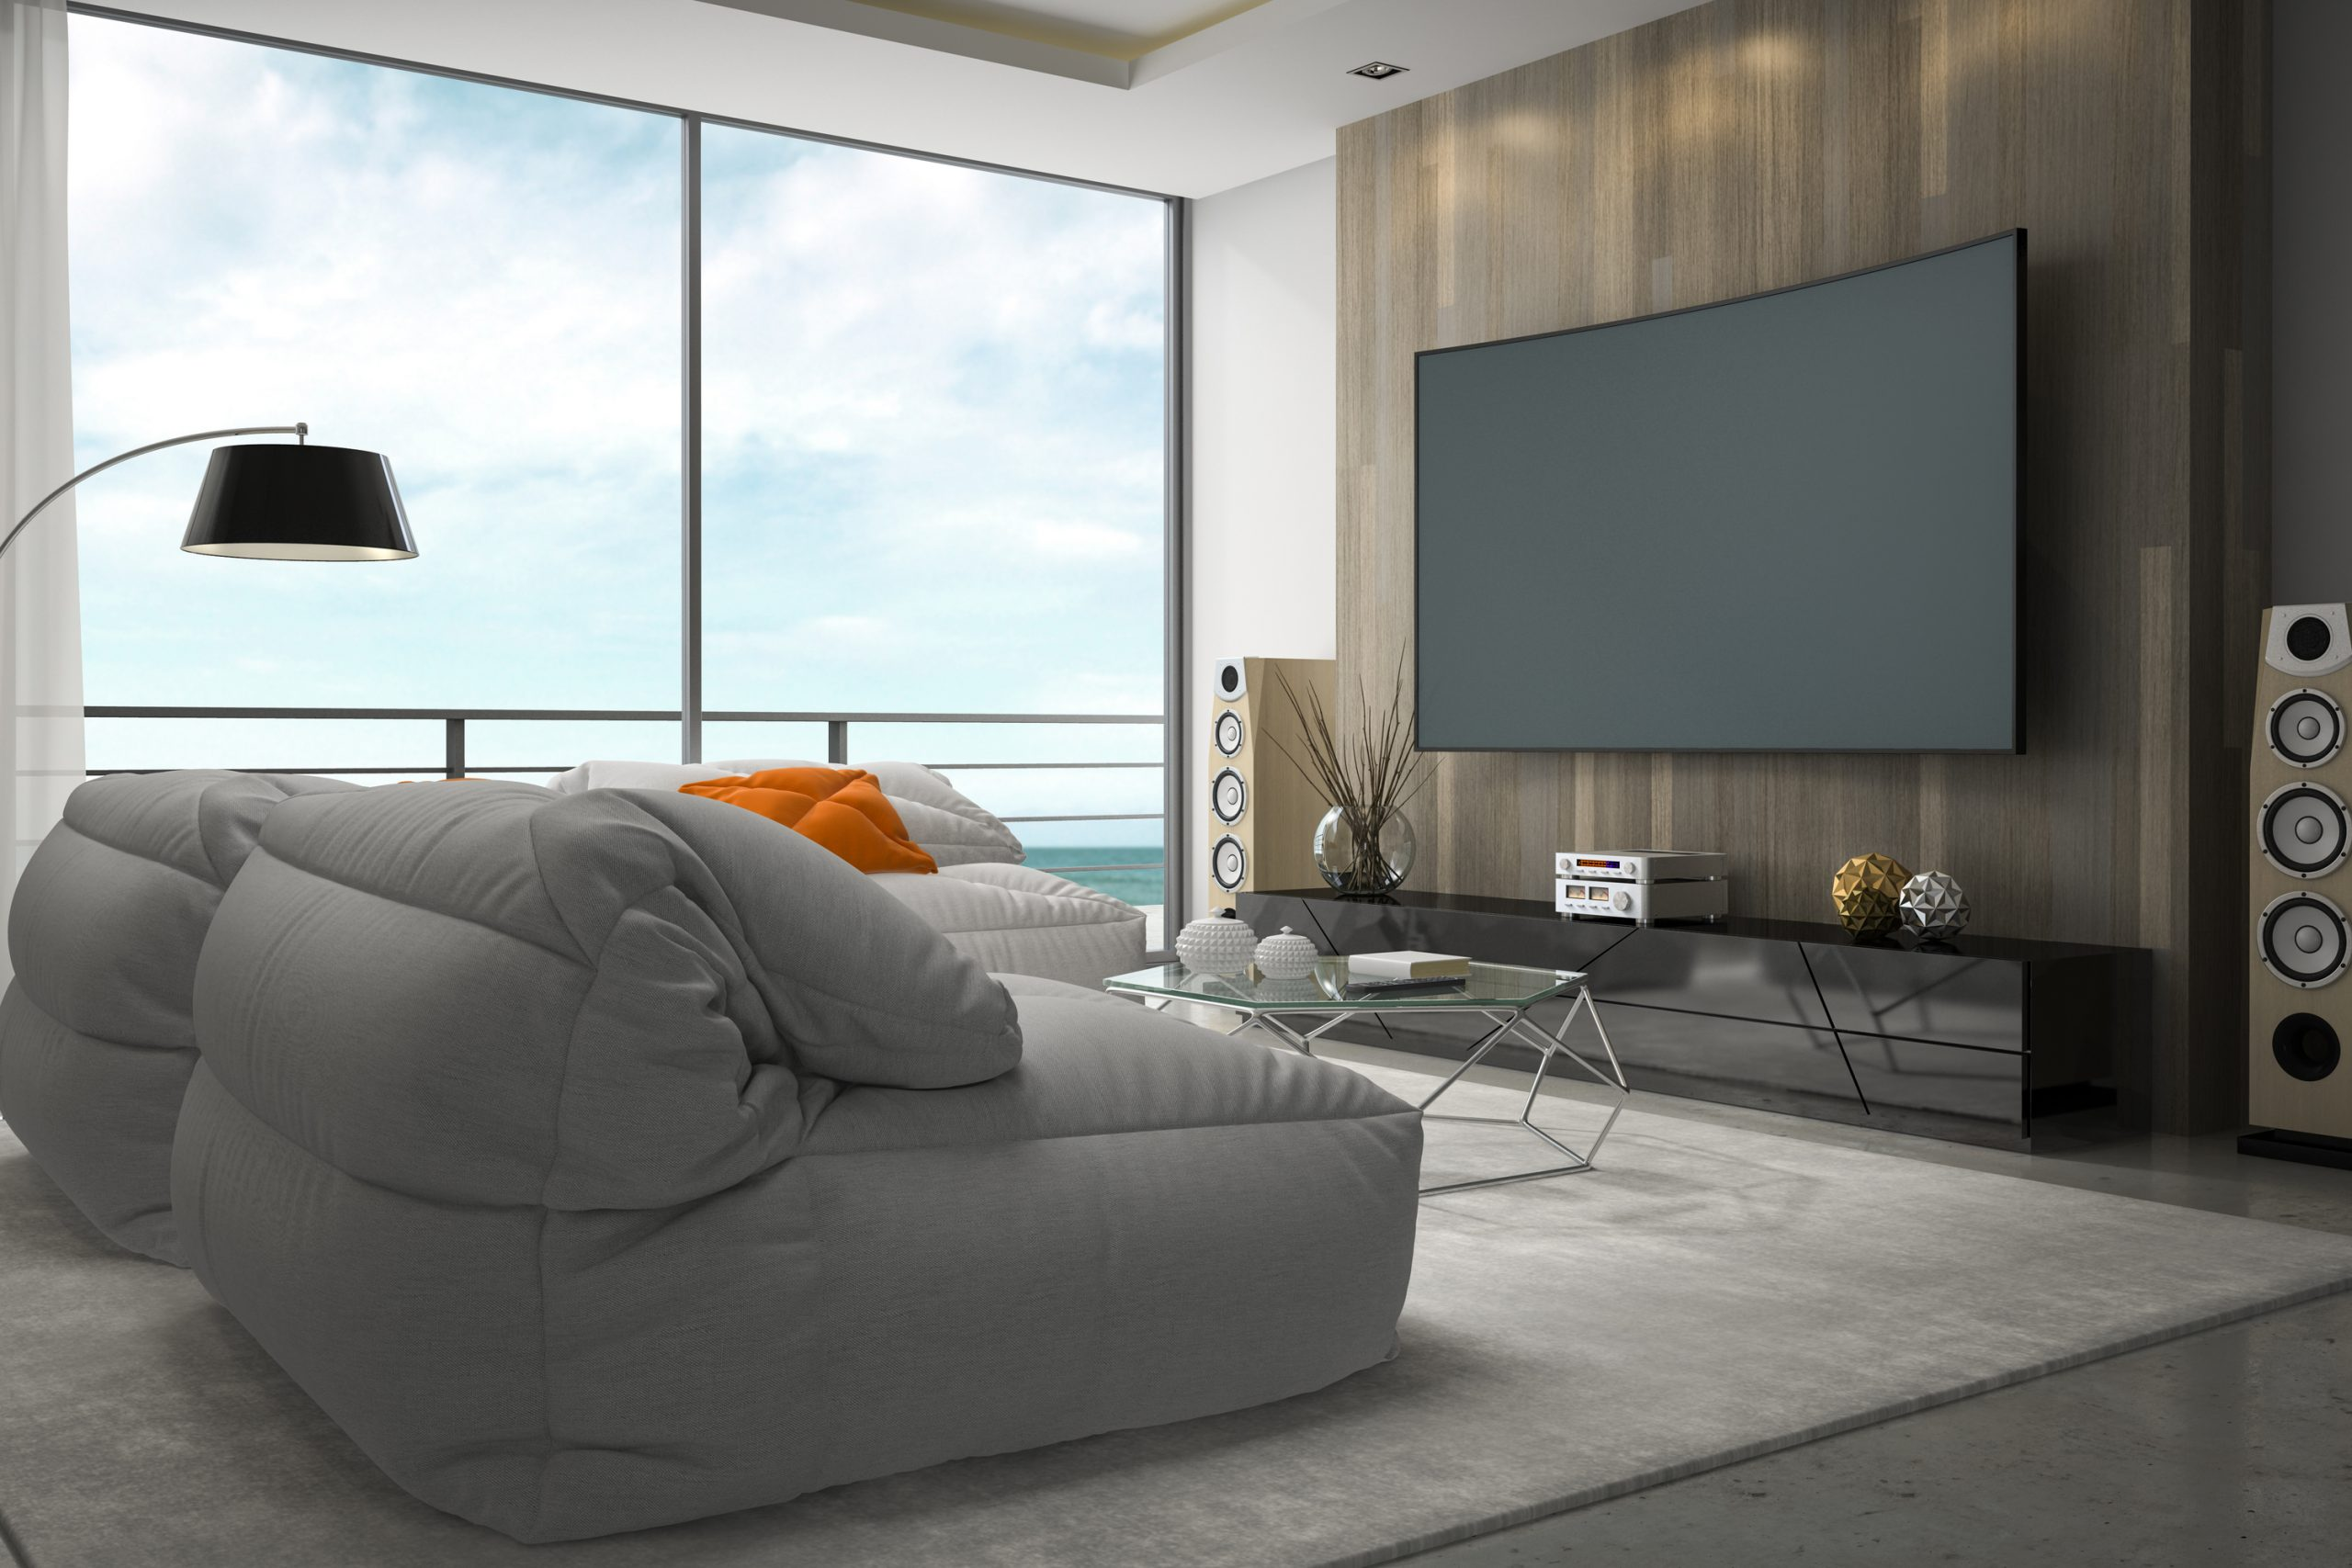 If you have always dreamed of having a home theater, check out one of these incredibly easy home theater designs. These bean bags make amazing seats for your home theater.